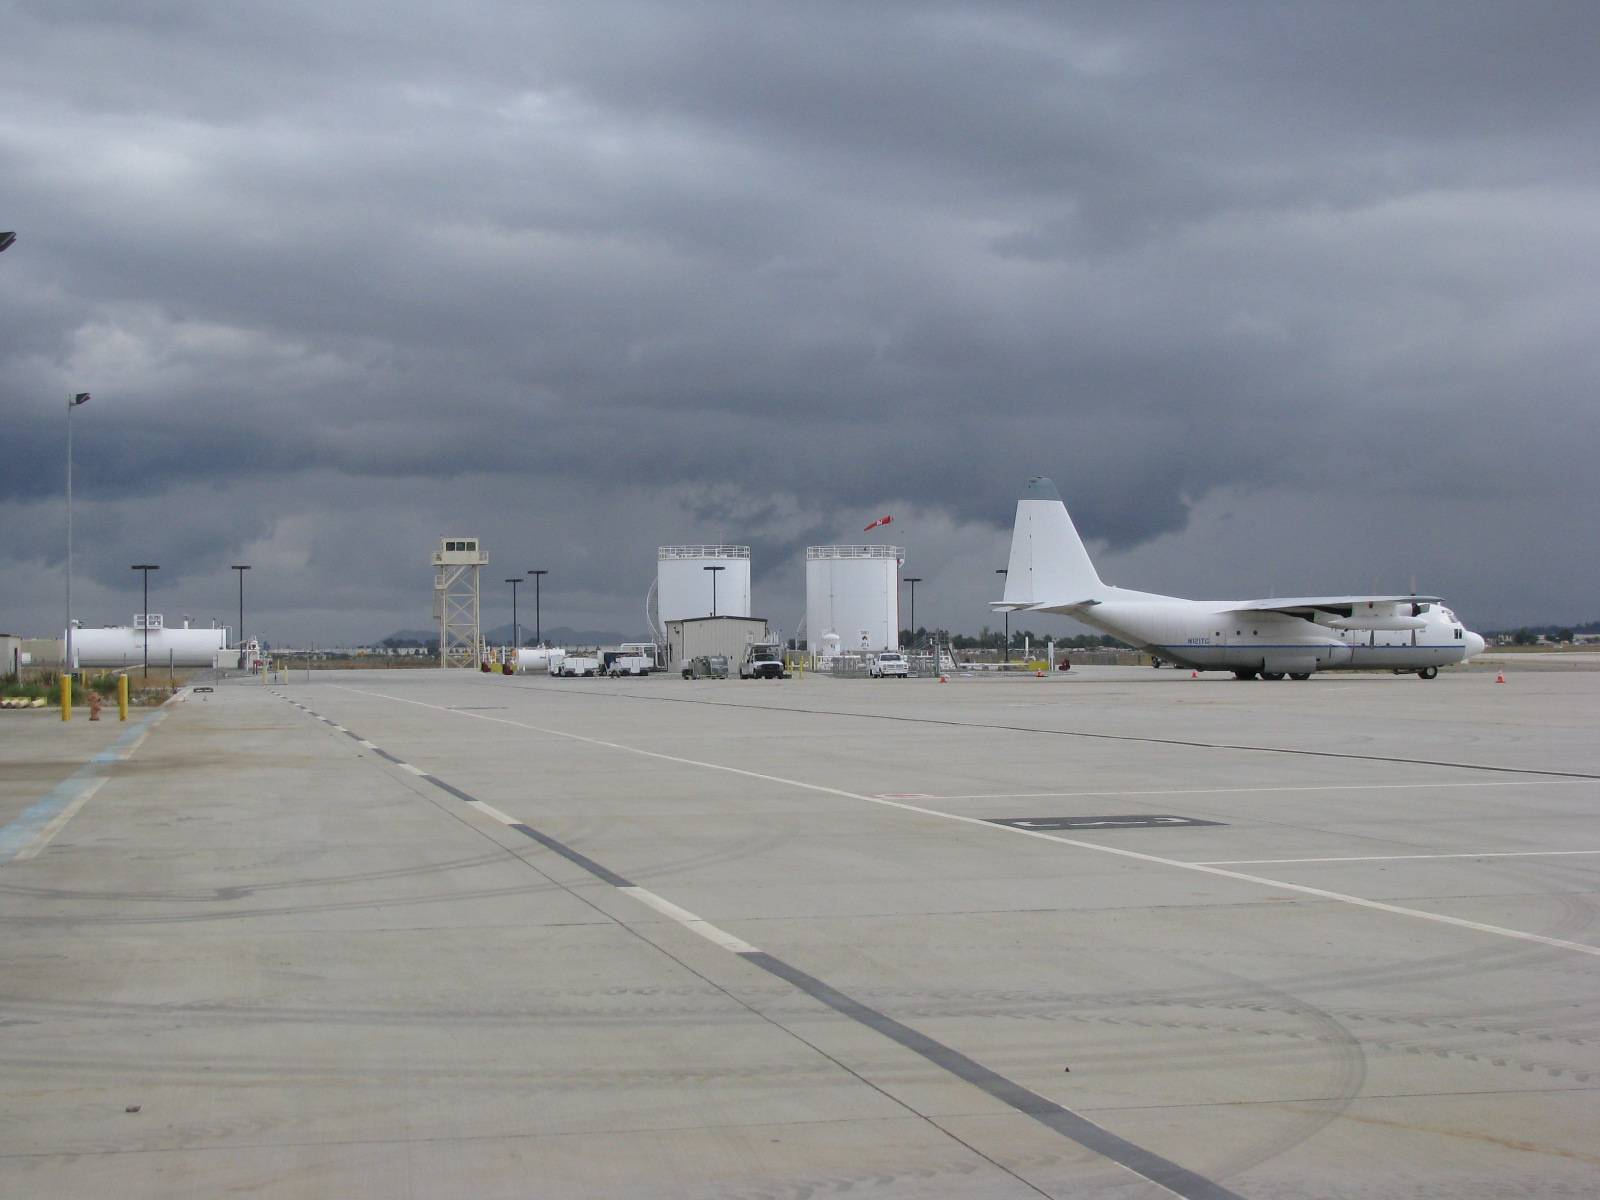 C-130 in front of new fuel facility